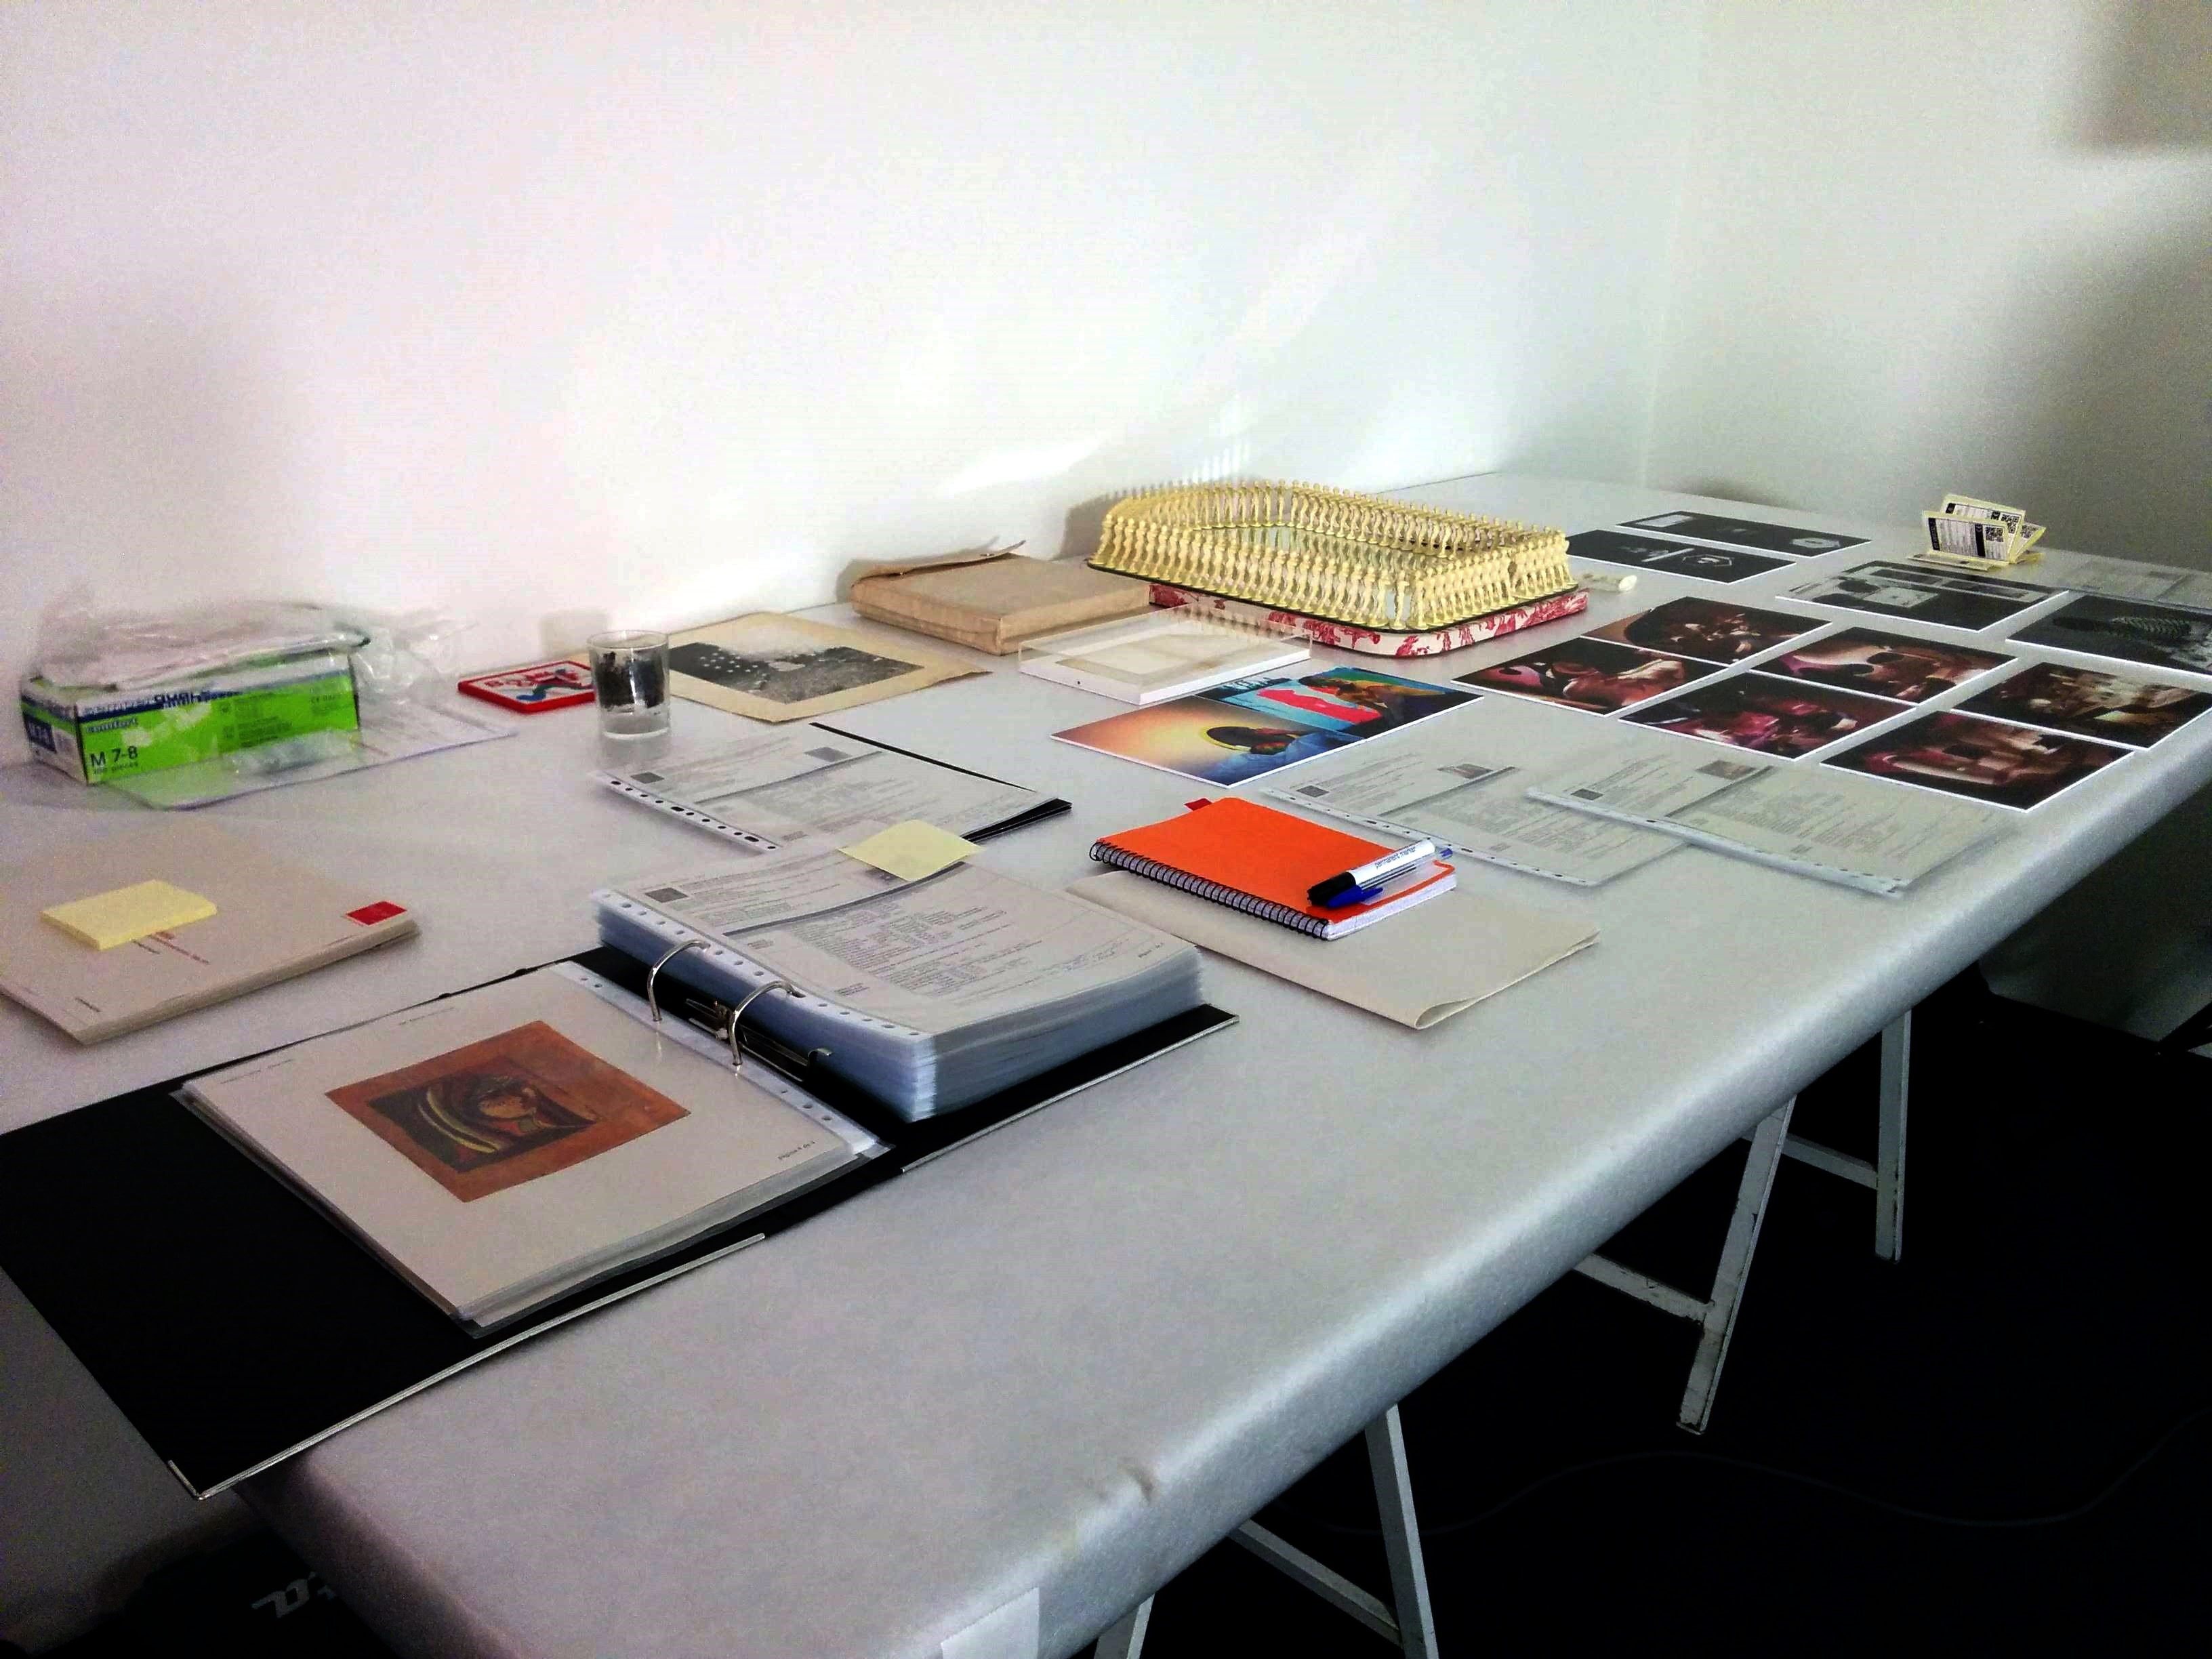 First works and working documentation.